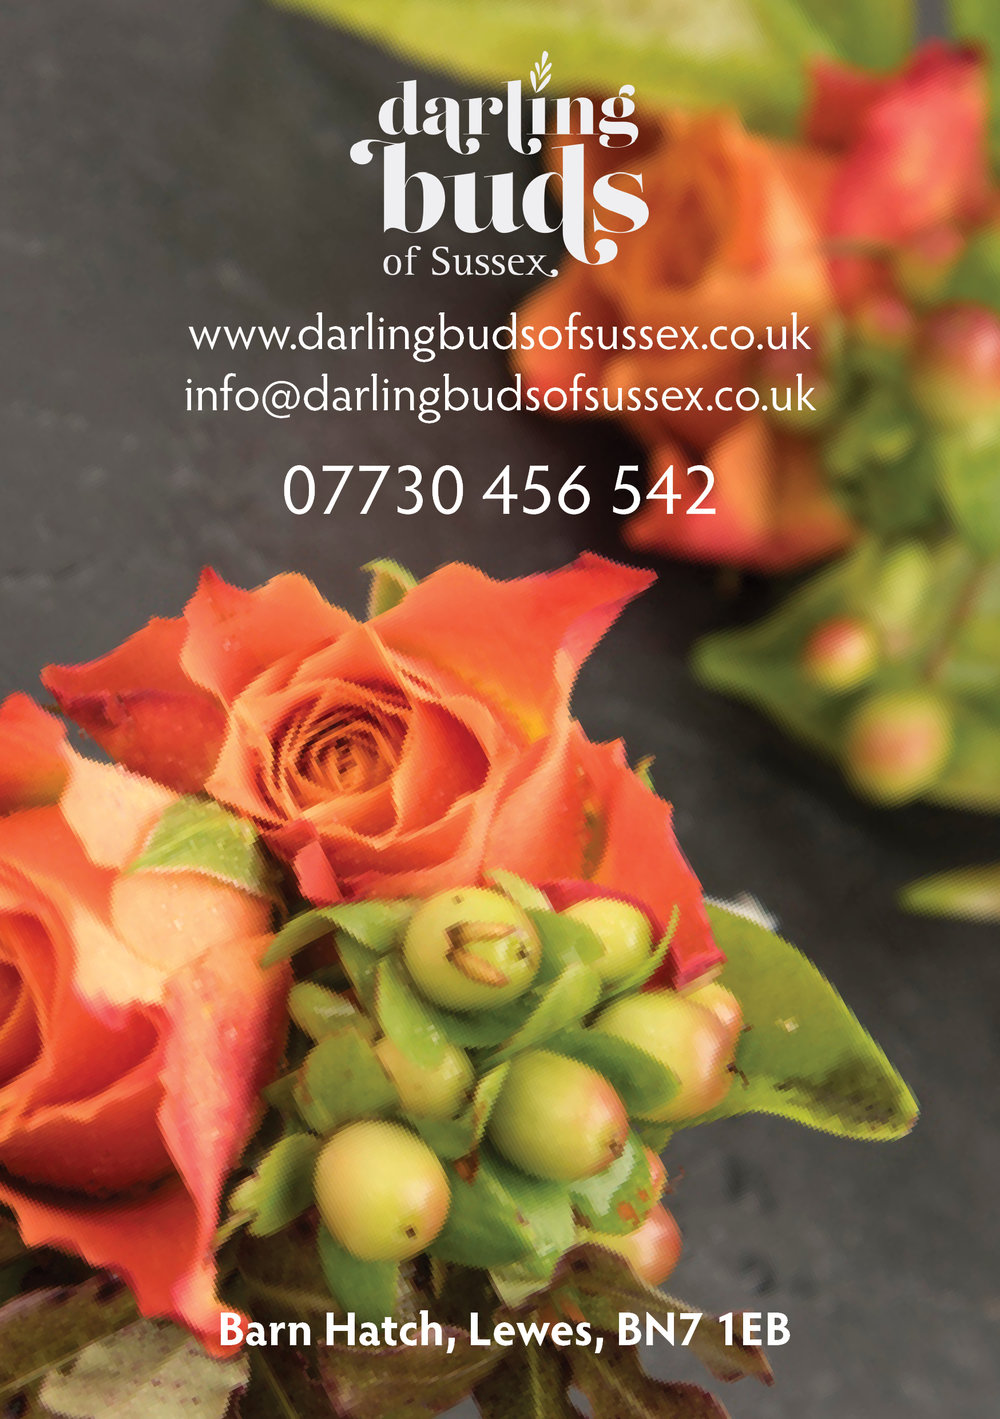 Darling Buds of Sussex leaflet.jpg